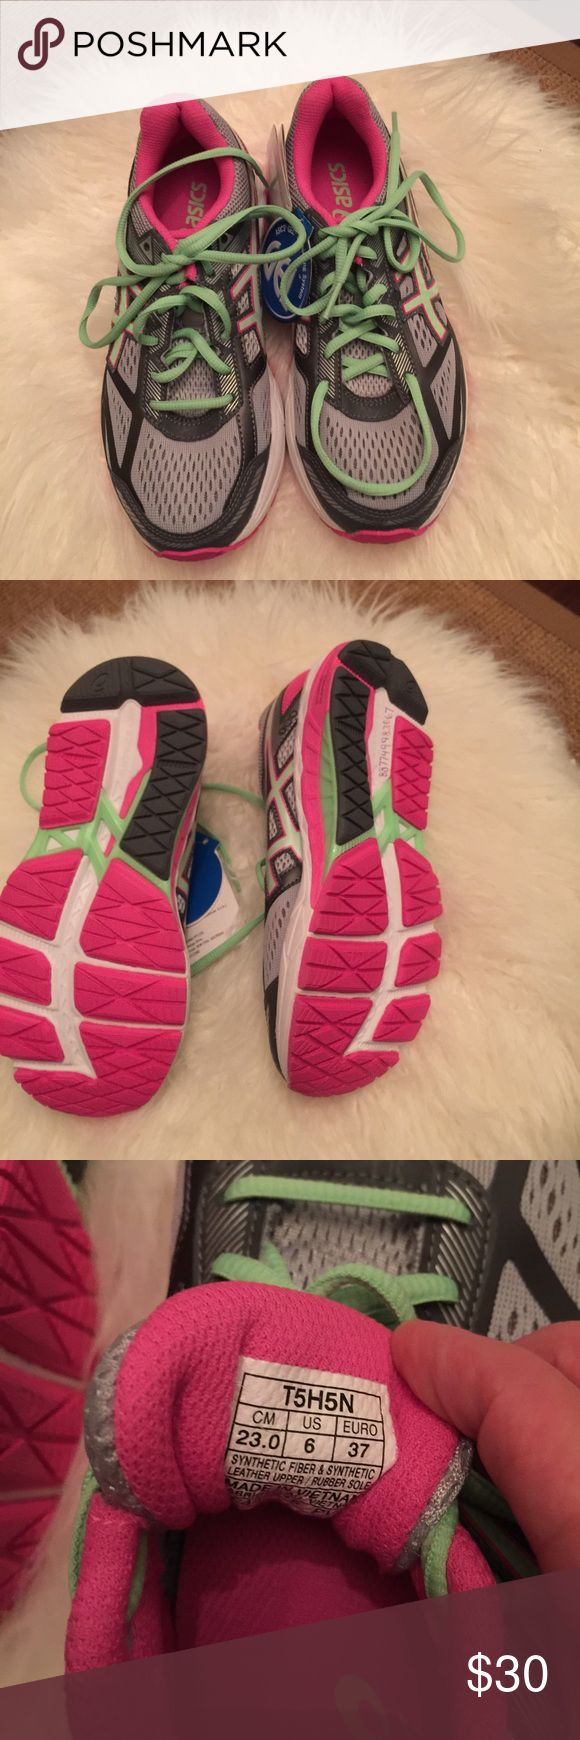 ASIC women gel foundation sneaker Brand-new never worn Asics  gel foundation sneaker size 6 retail  over $120 Asics Shoes Athletic Shoes